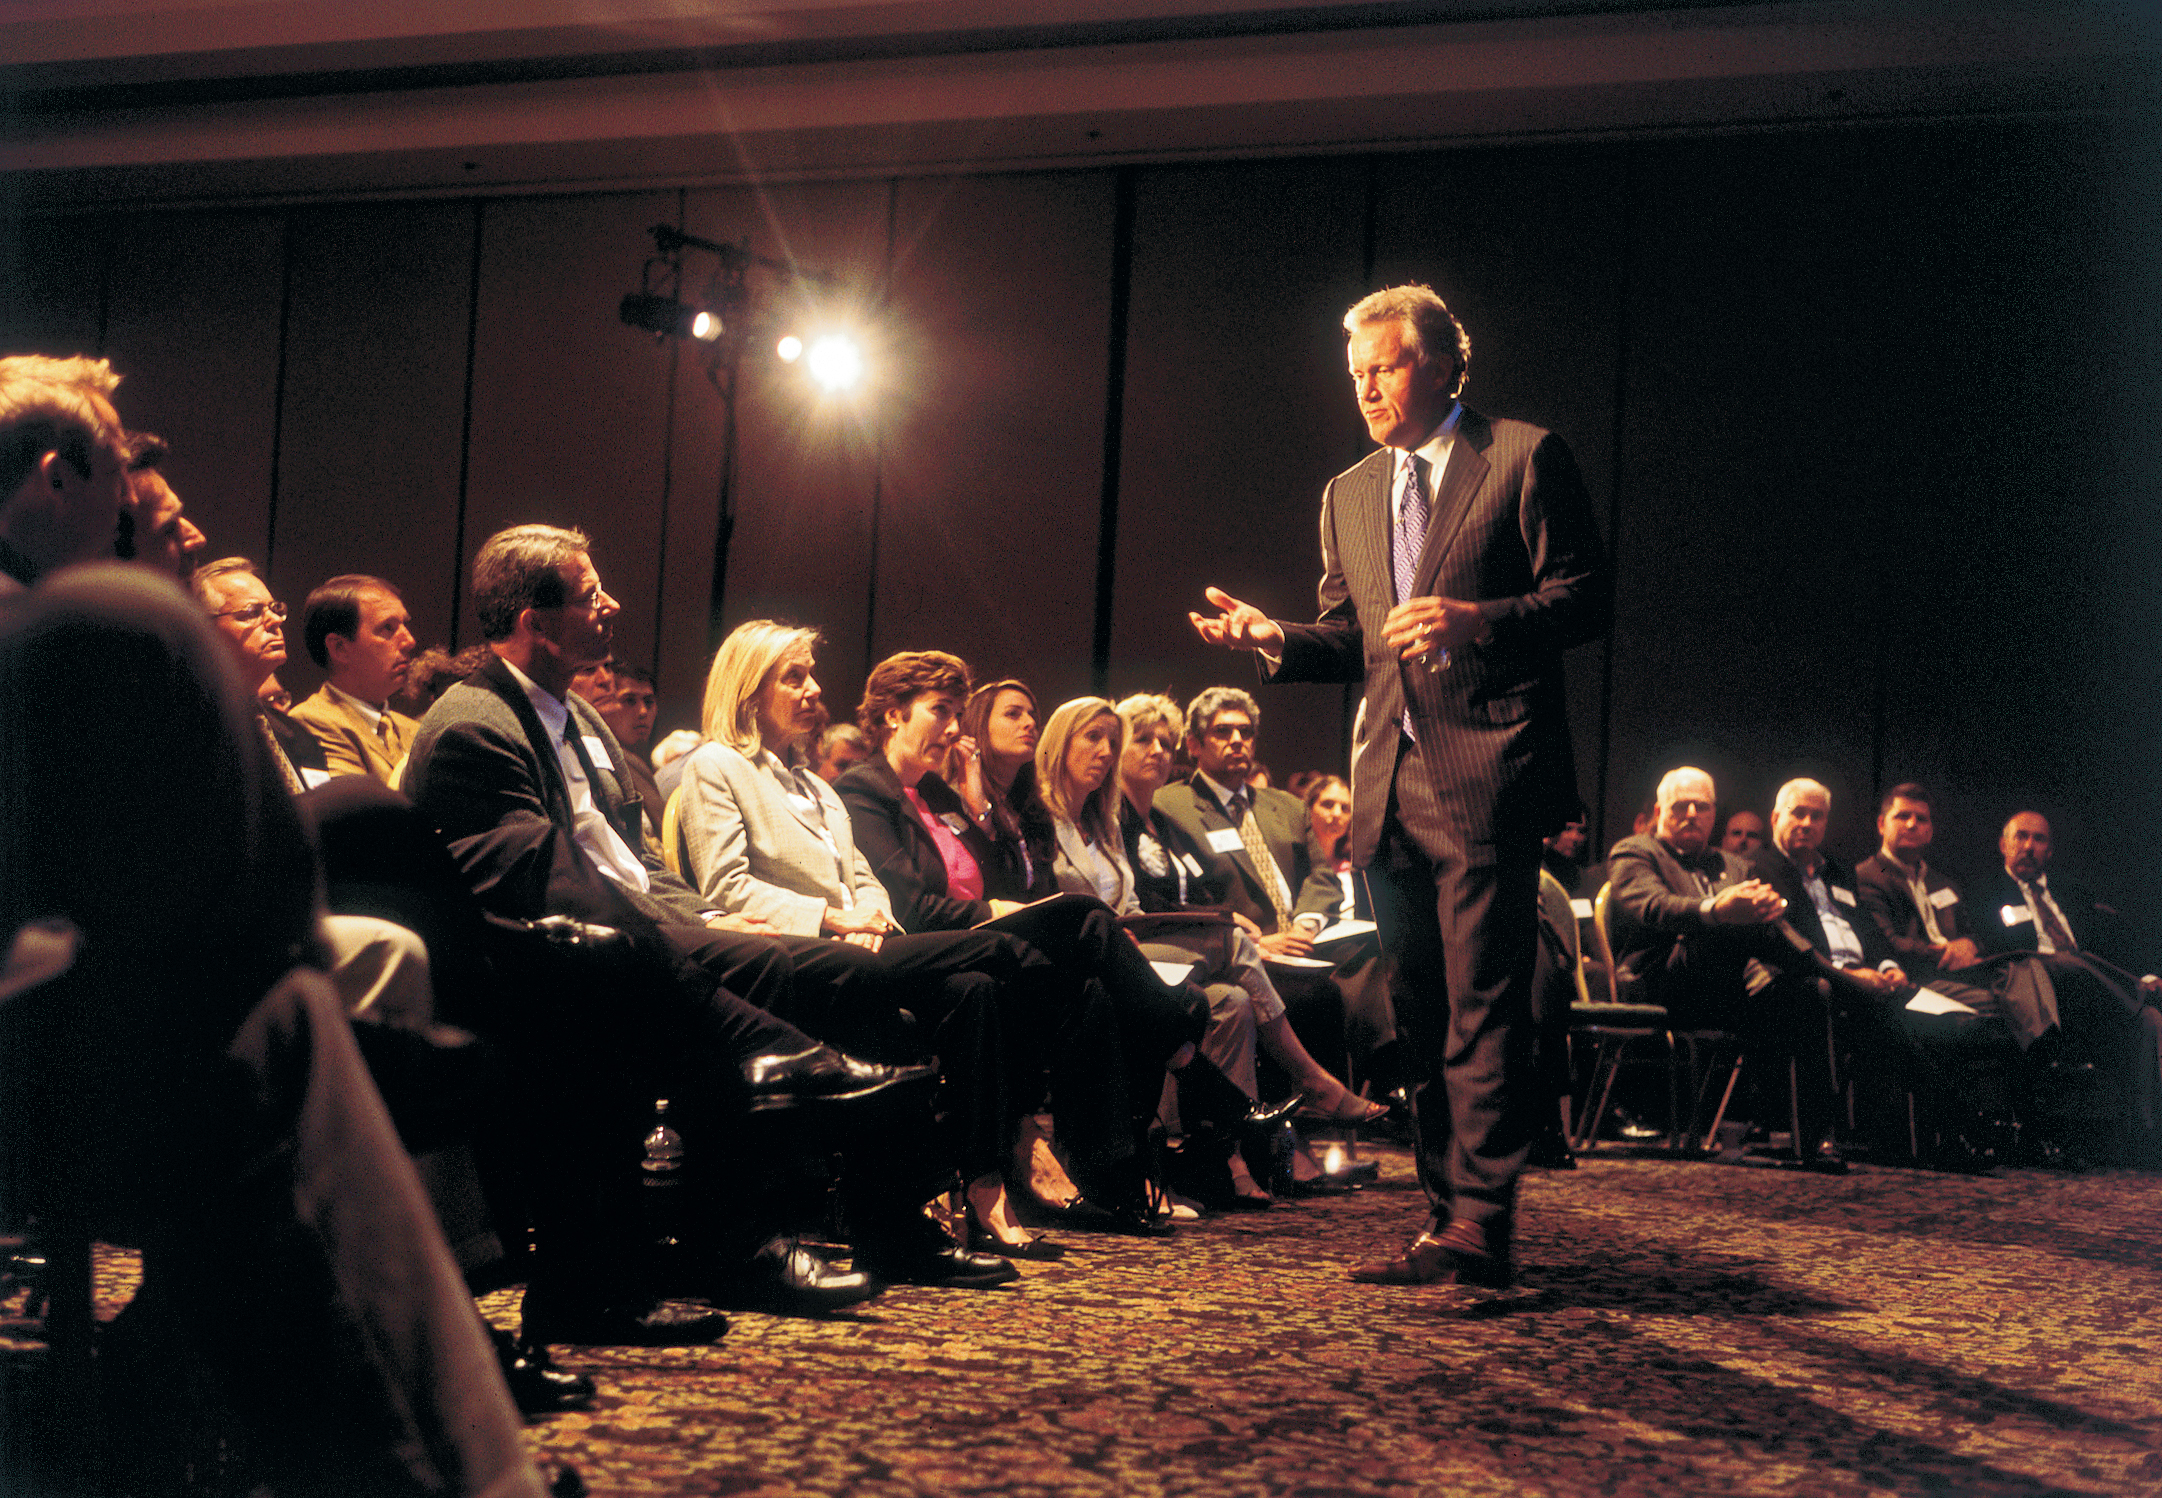 General Electric CEO Jeffrey Immelt speaking during an event in San Francisco.